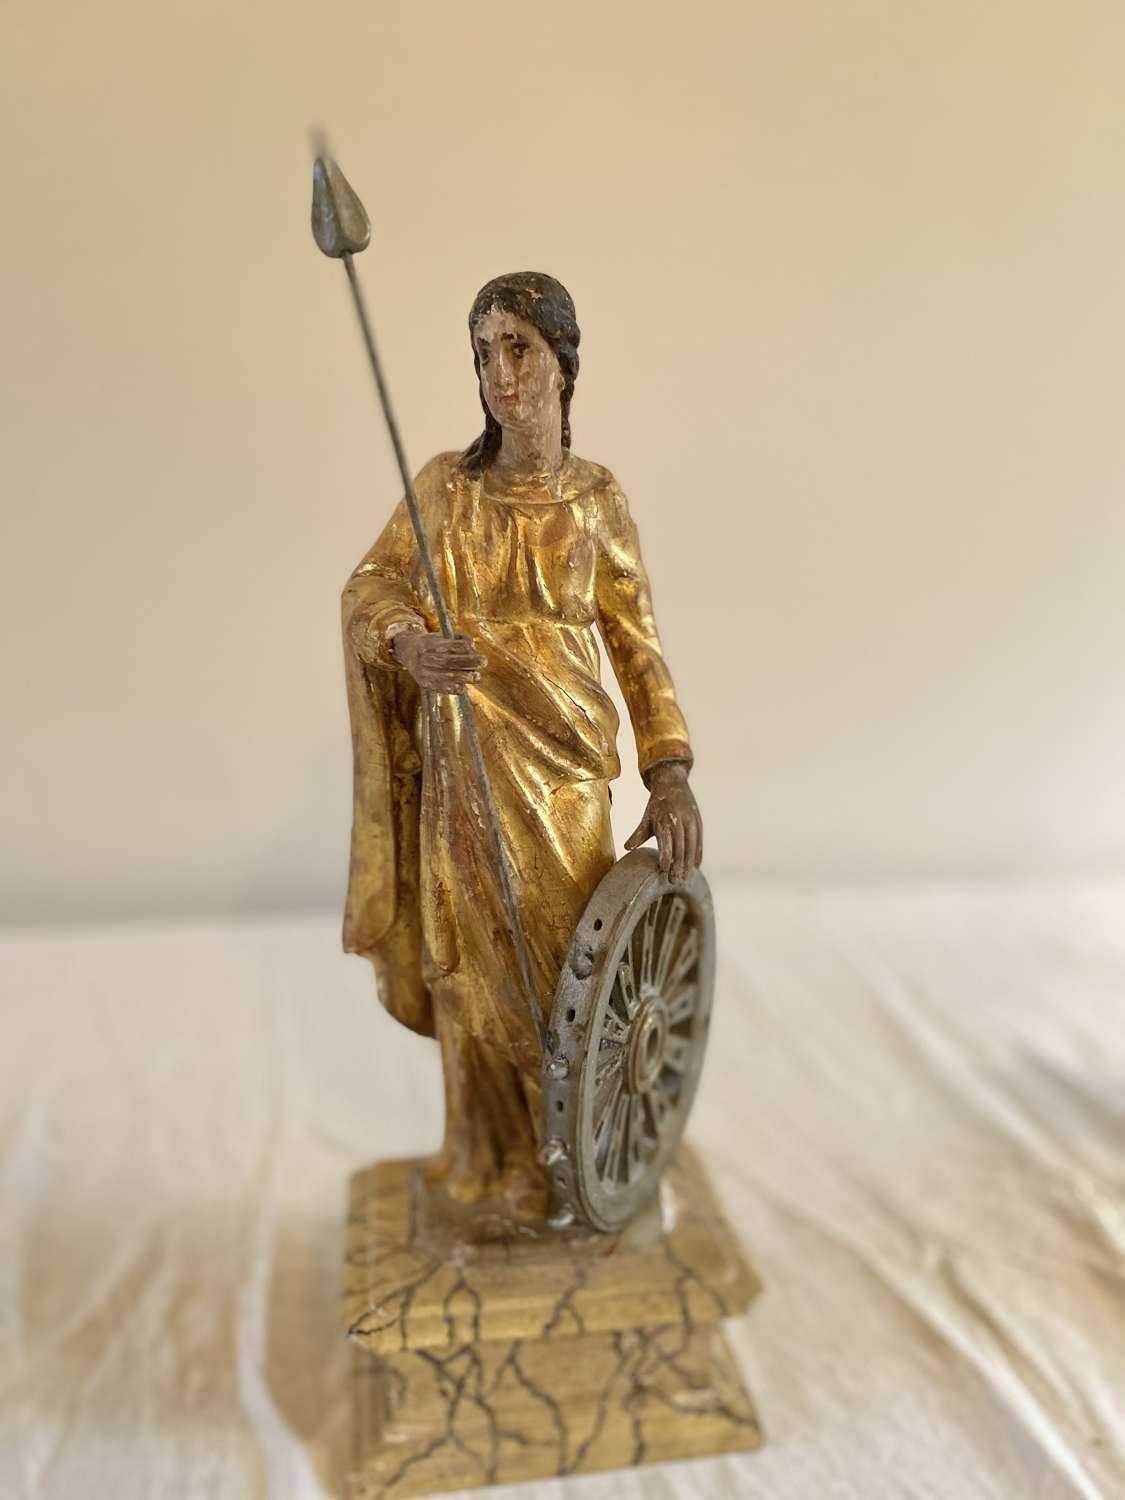 A carved wood effigy of Saint Catherine